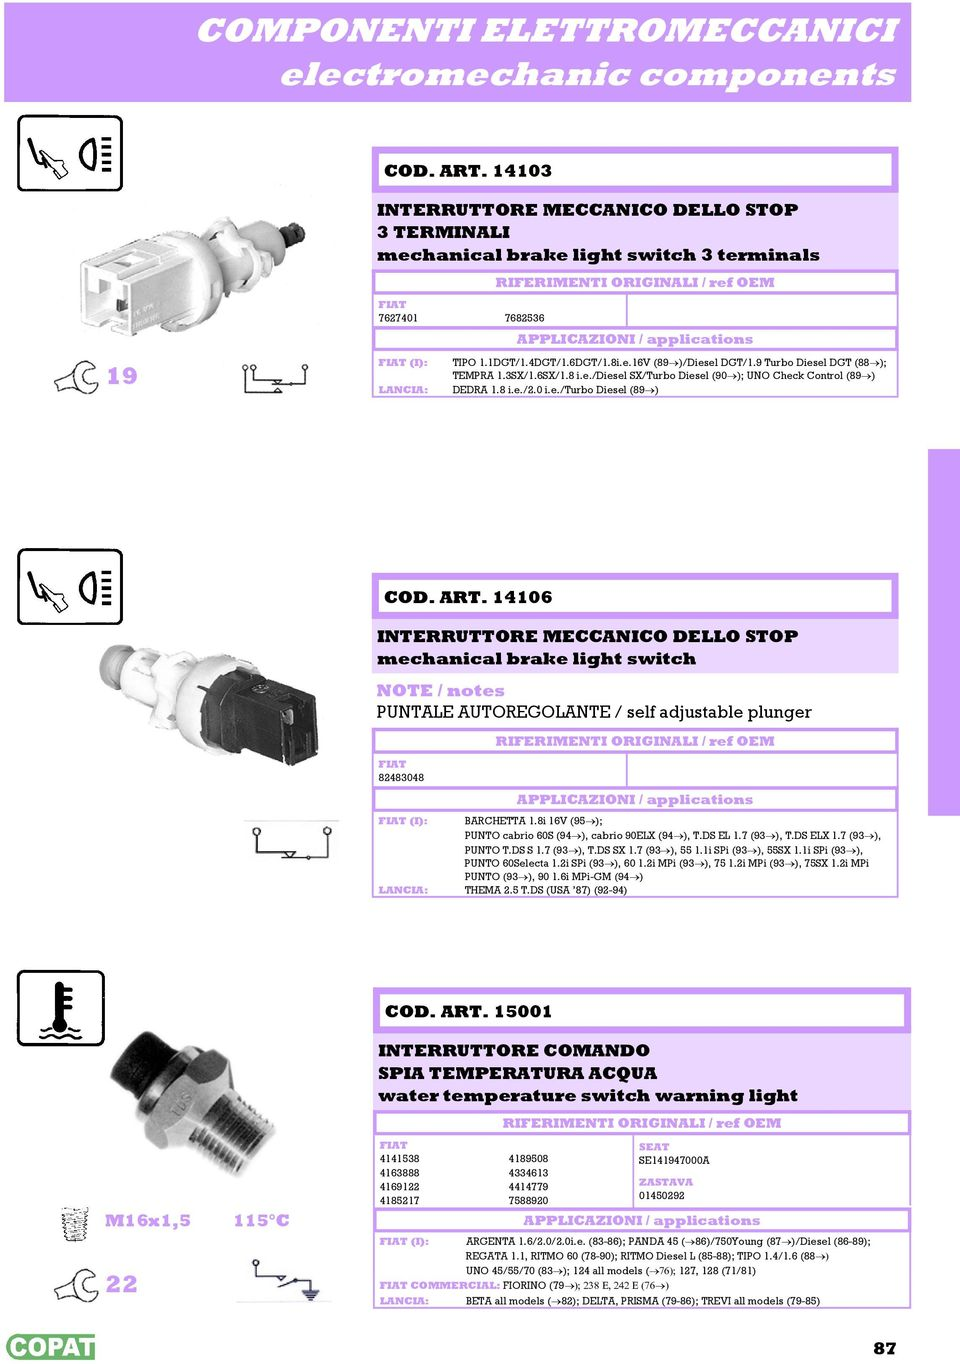 ART. 14106 INTERRUTTORE MECCANICO DELLO STOP mechanical brake light switch NOTE / notes PUNTALE AUTOREGOLANTE / self adjustable plunger 82483048 (I): BARCHETTA 1.